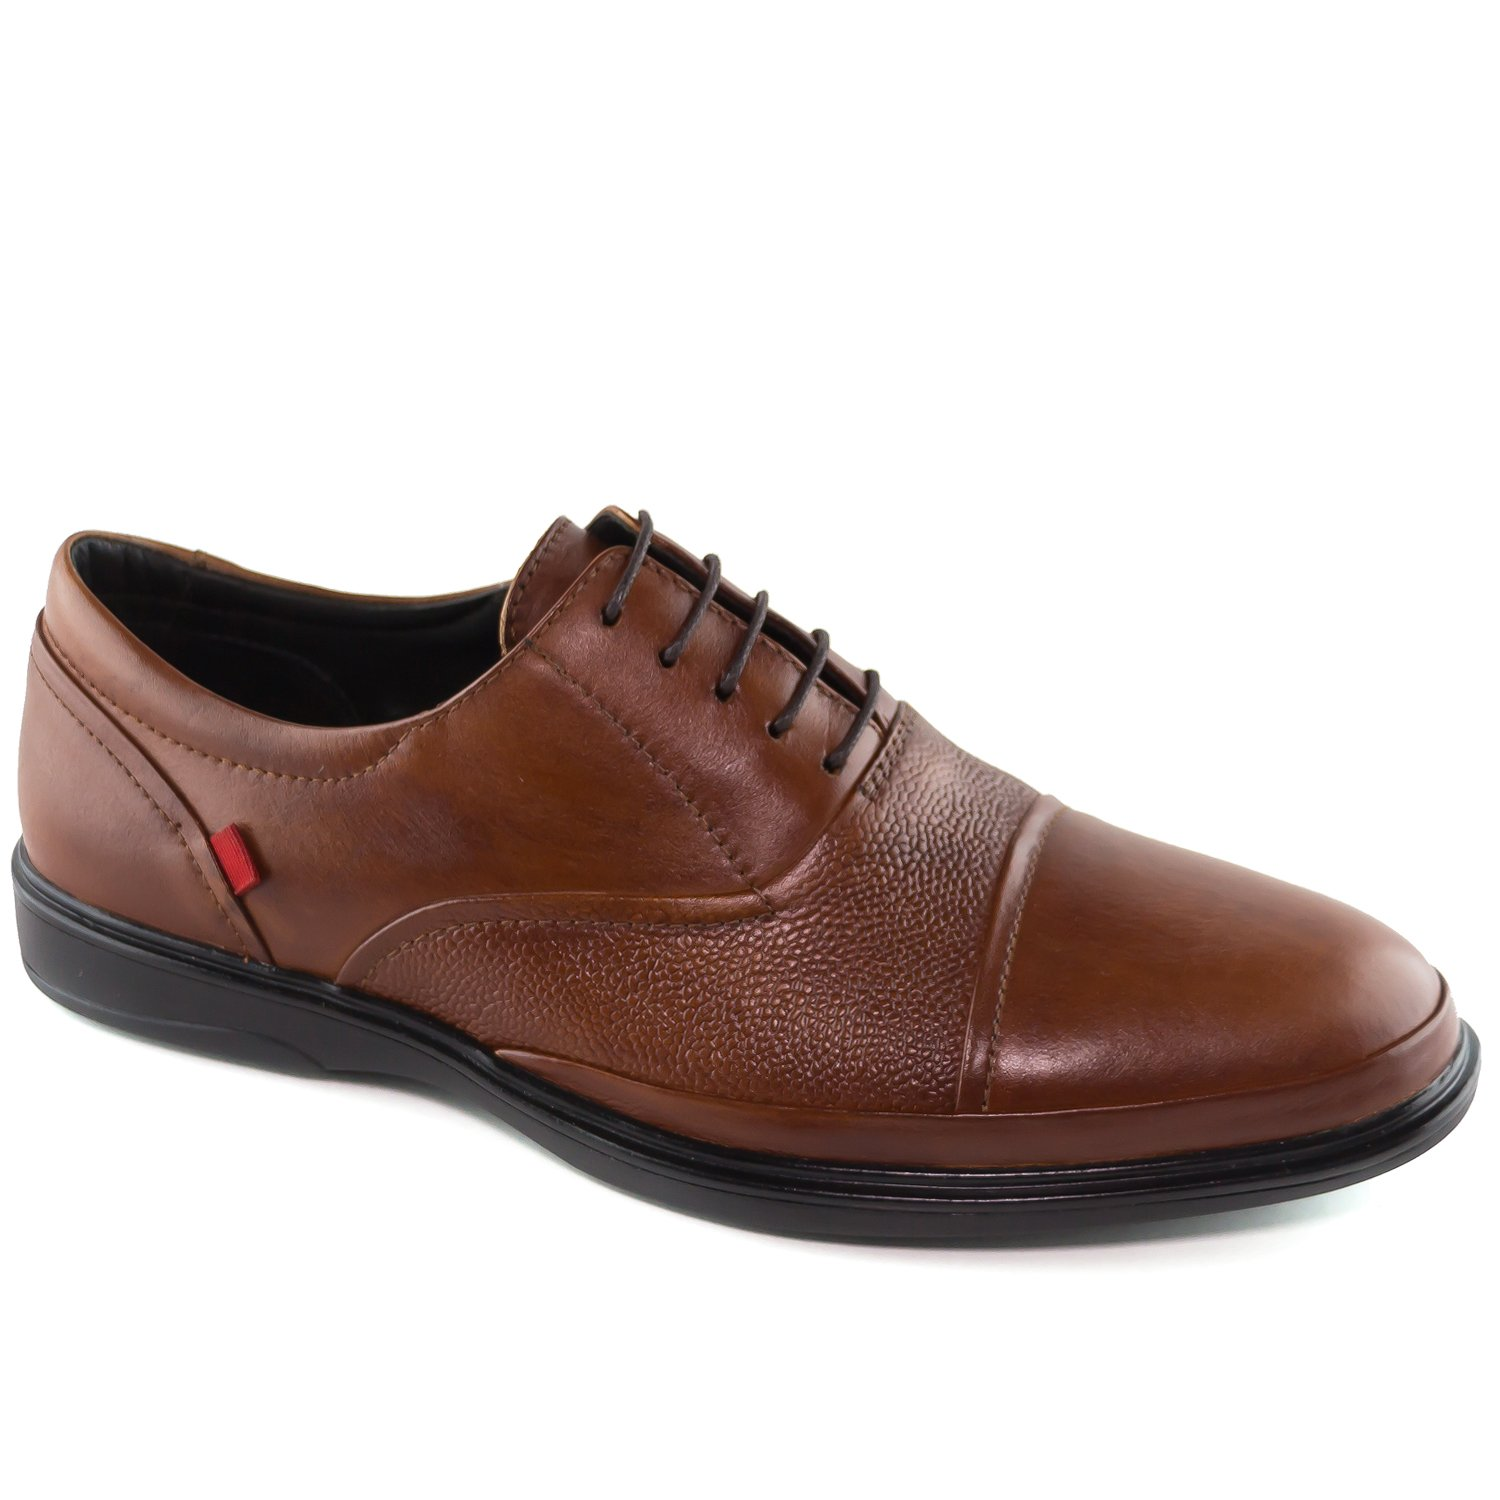 Mens Genuine Leather Made In Brazil Broad Street Classic Oxford Whiskey Grainy Lace Up Marc Joseph NY Fashion Shoes 7